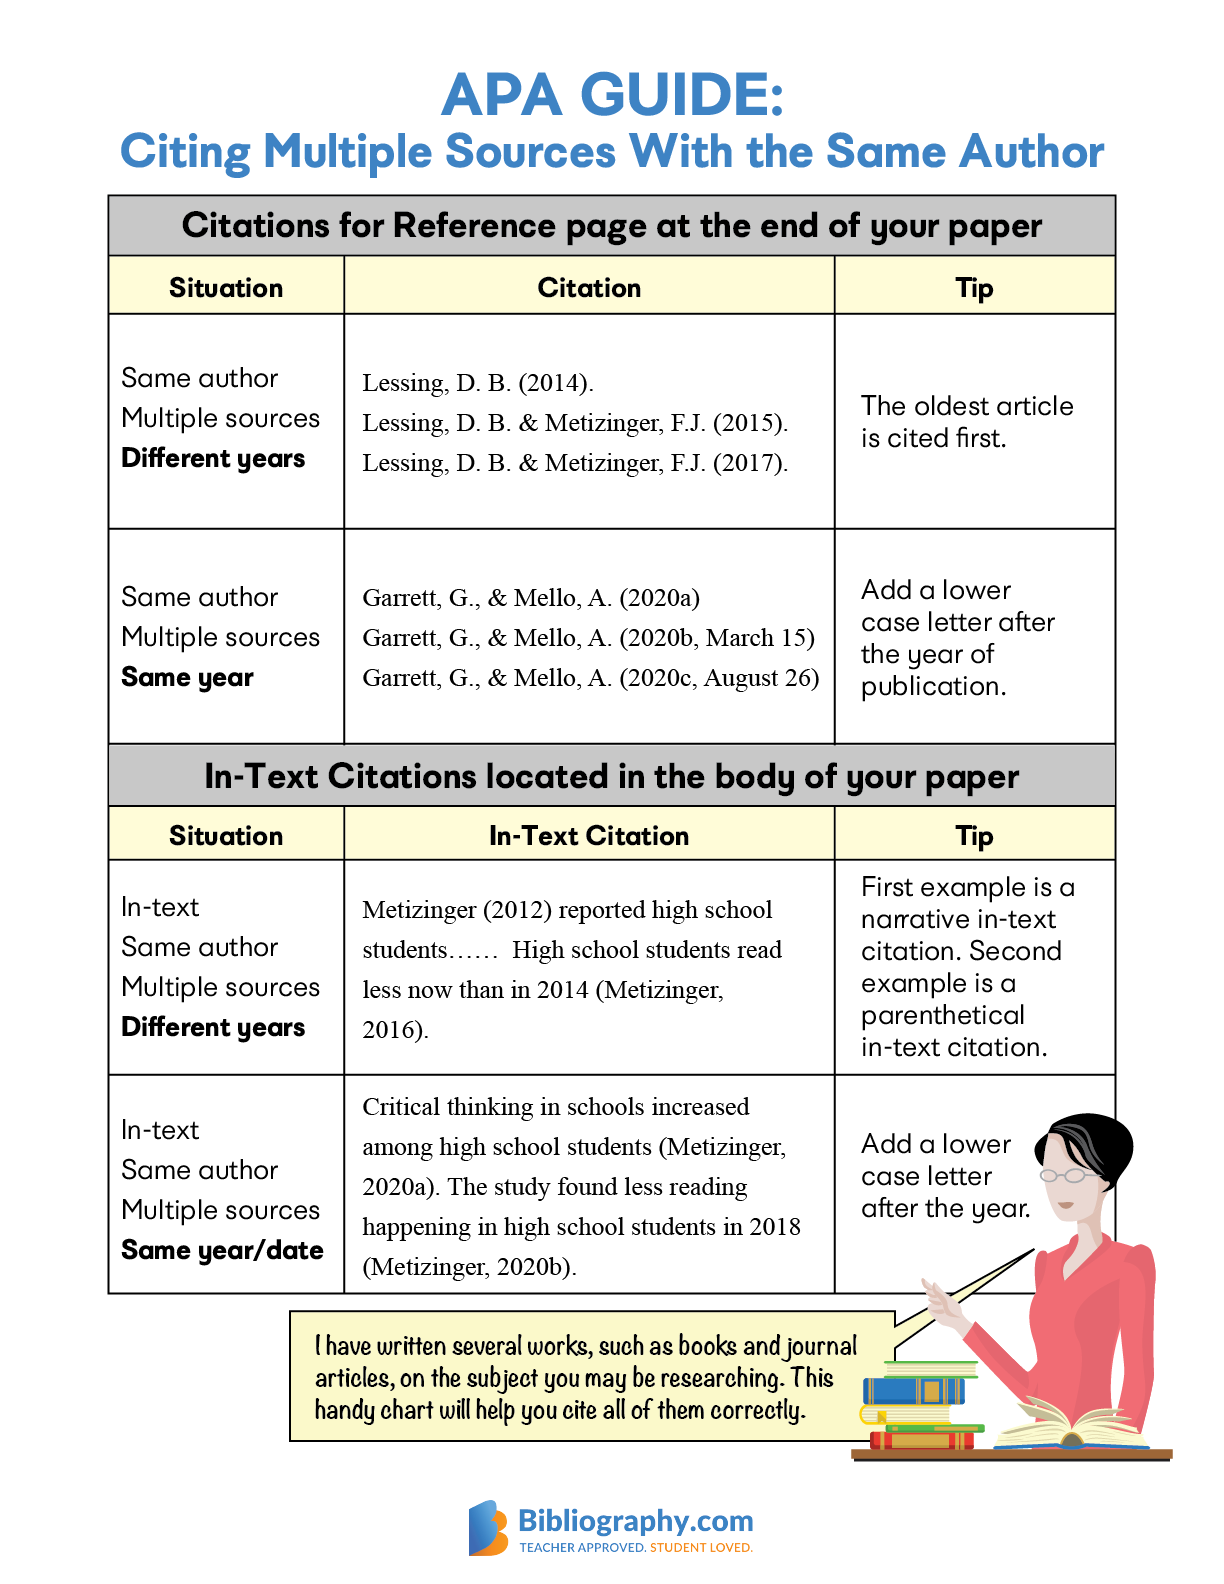 APA guide chart citations same author